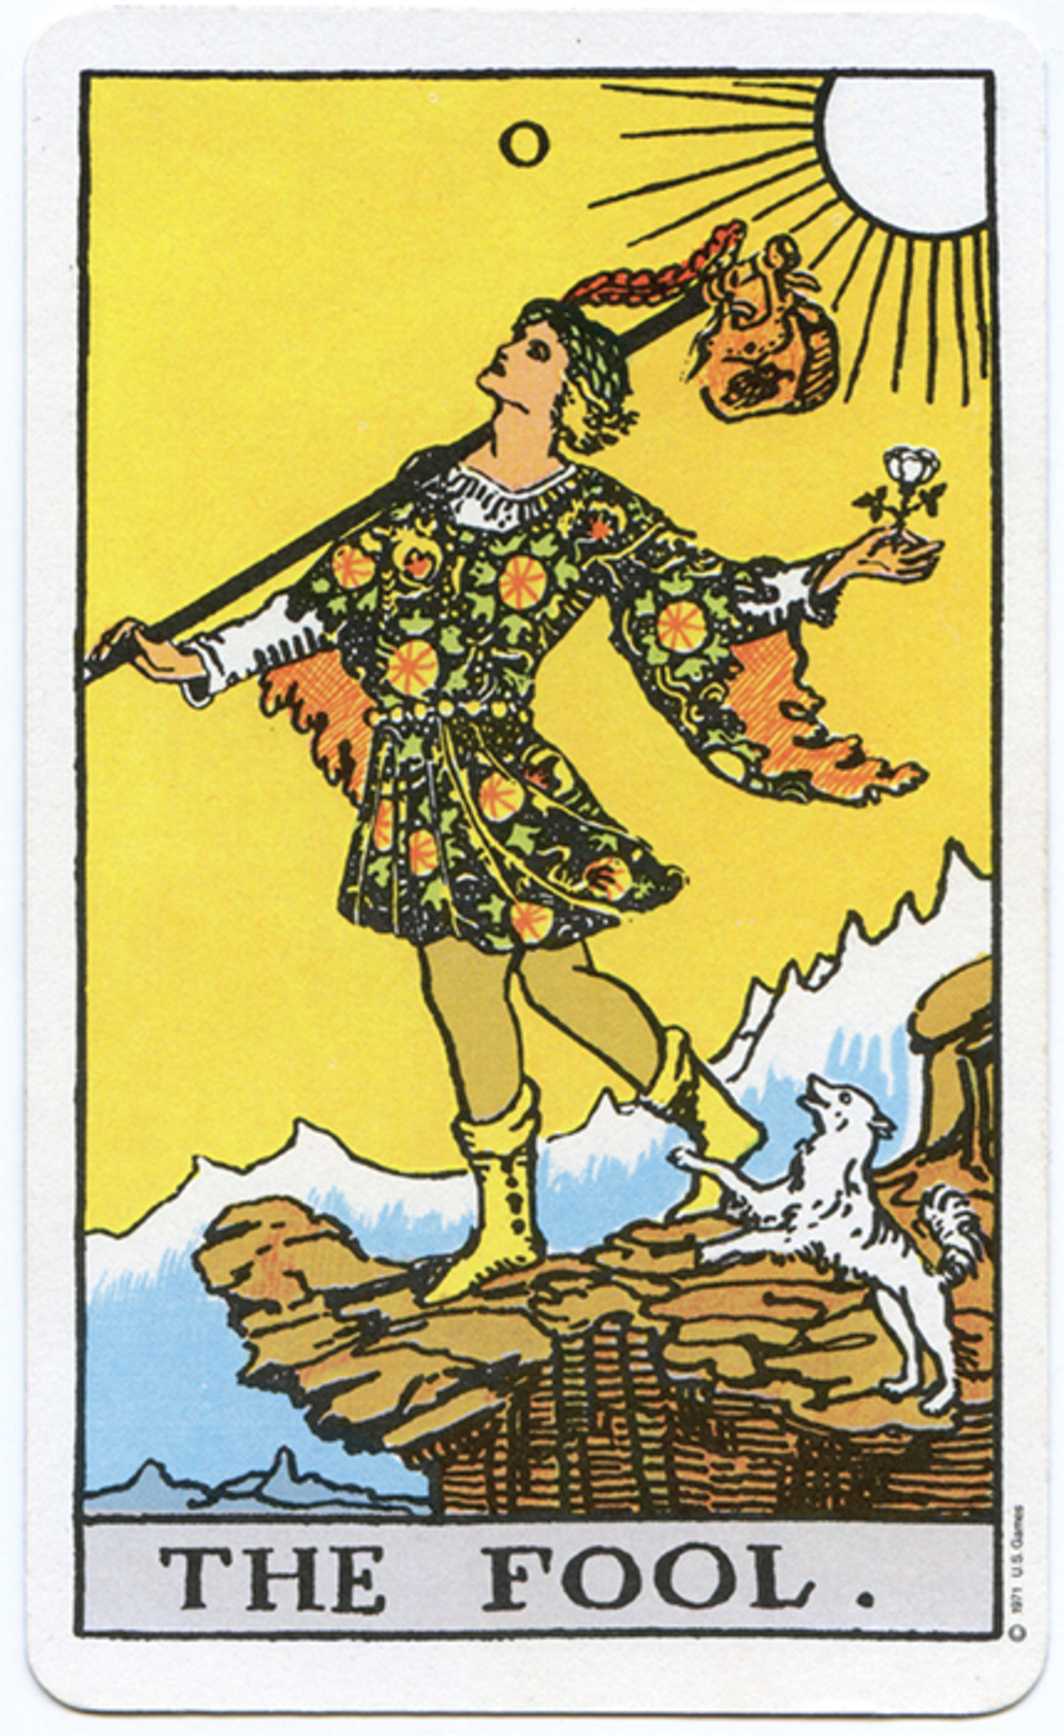 "*""The Fool"" card from the Rider-Waite tarot deck, illustrated by Pamela Colman Smith, 1910.*"